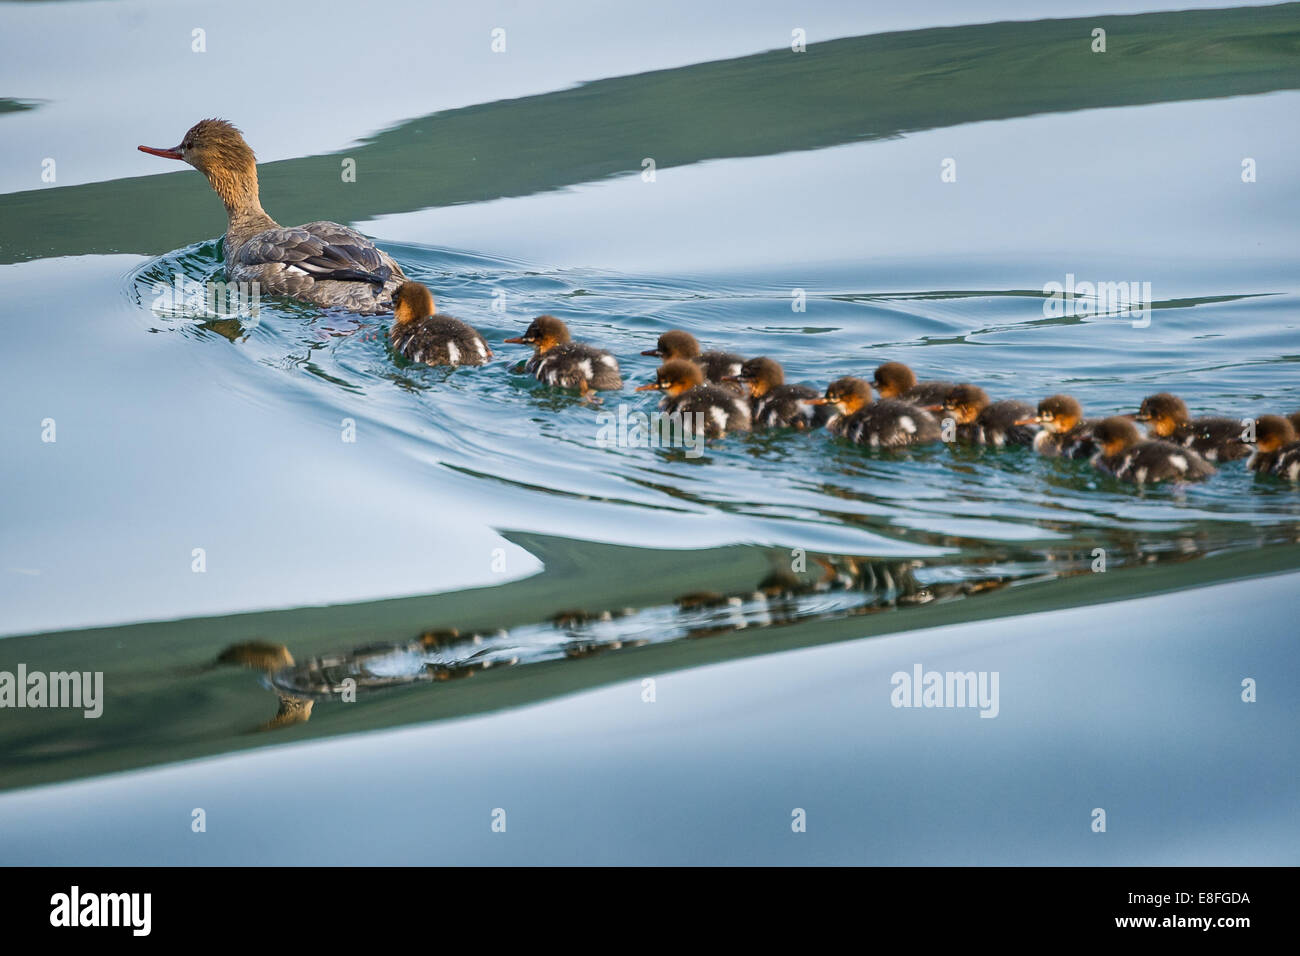 Duck with ducklings - Stock Image